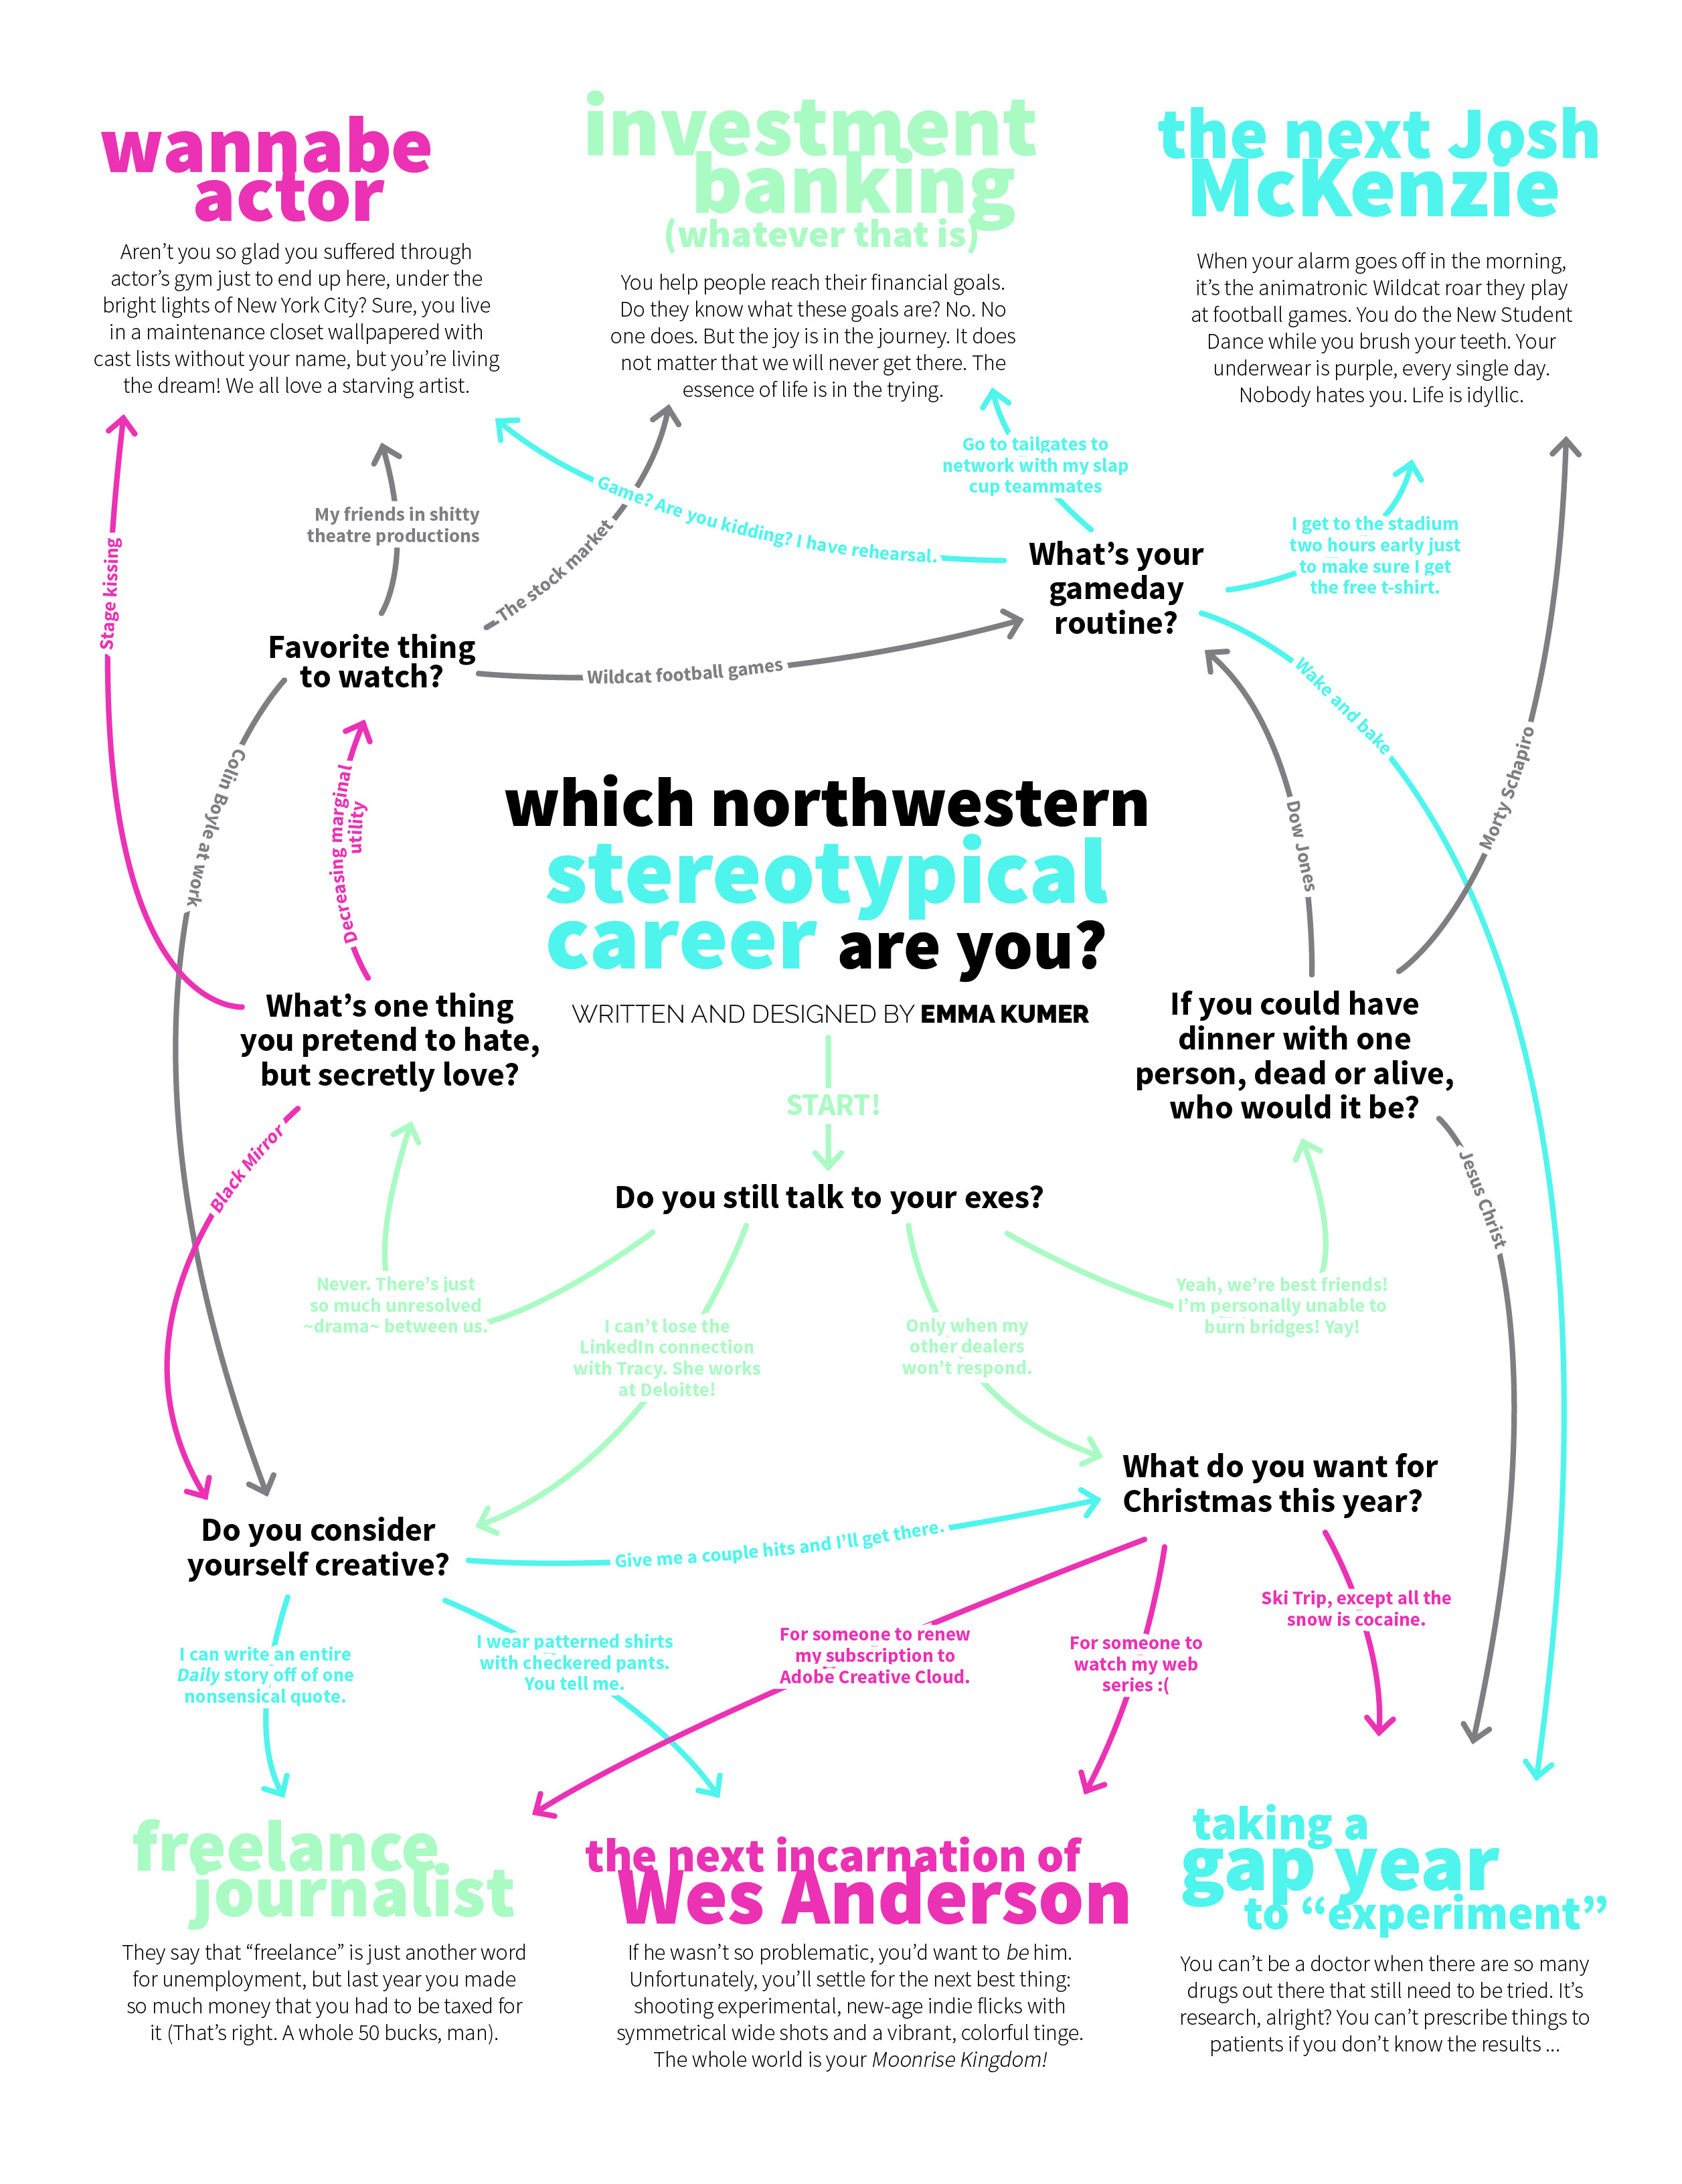 Which Northwestern stereotypical career are you? | North by